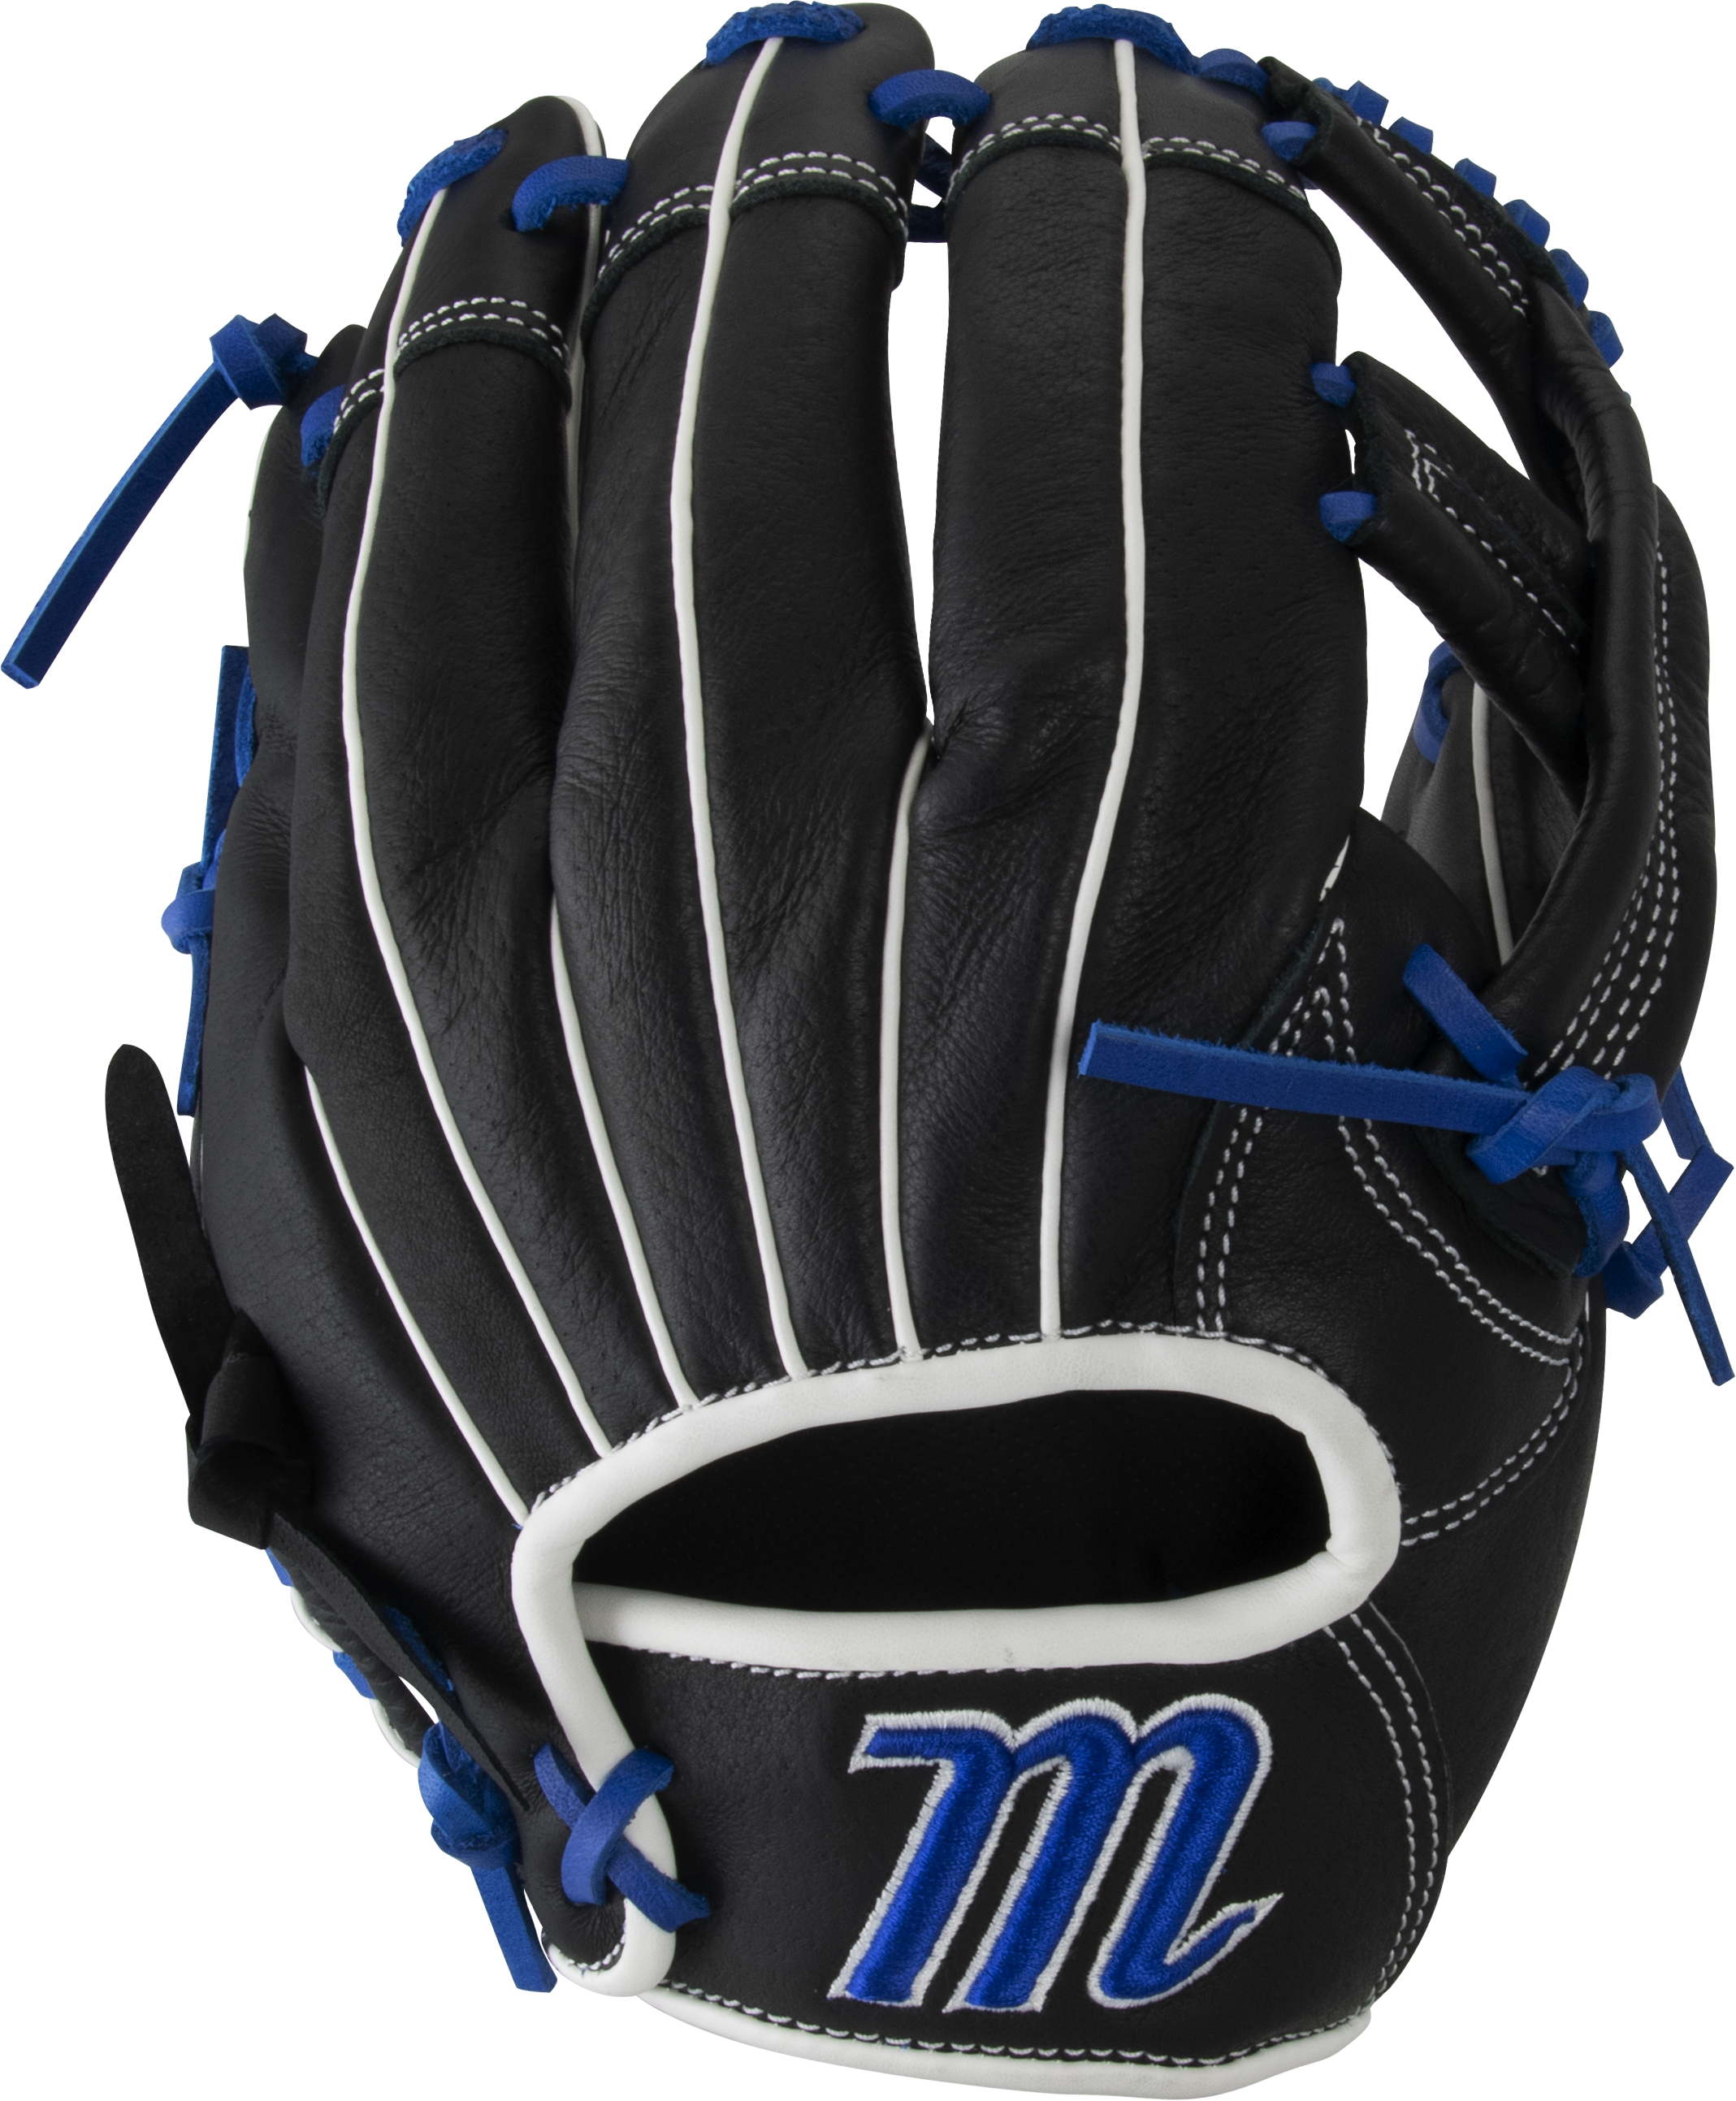 marucci-acadia-youth-baseball-glove-ac1150y-11-50-single-post-web-right-hand-throw MFGAC115Y-BKRB-RightHandThrow Marucci 849817099728 Full leather shell provides strength while padded palm lining reduces weight